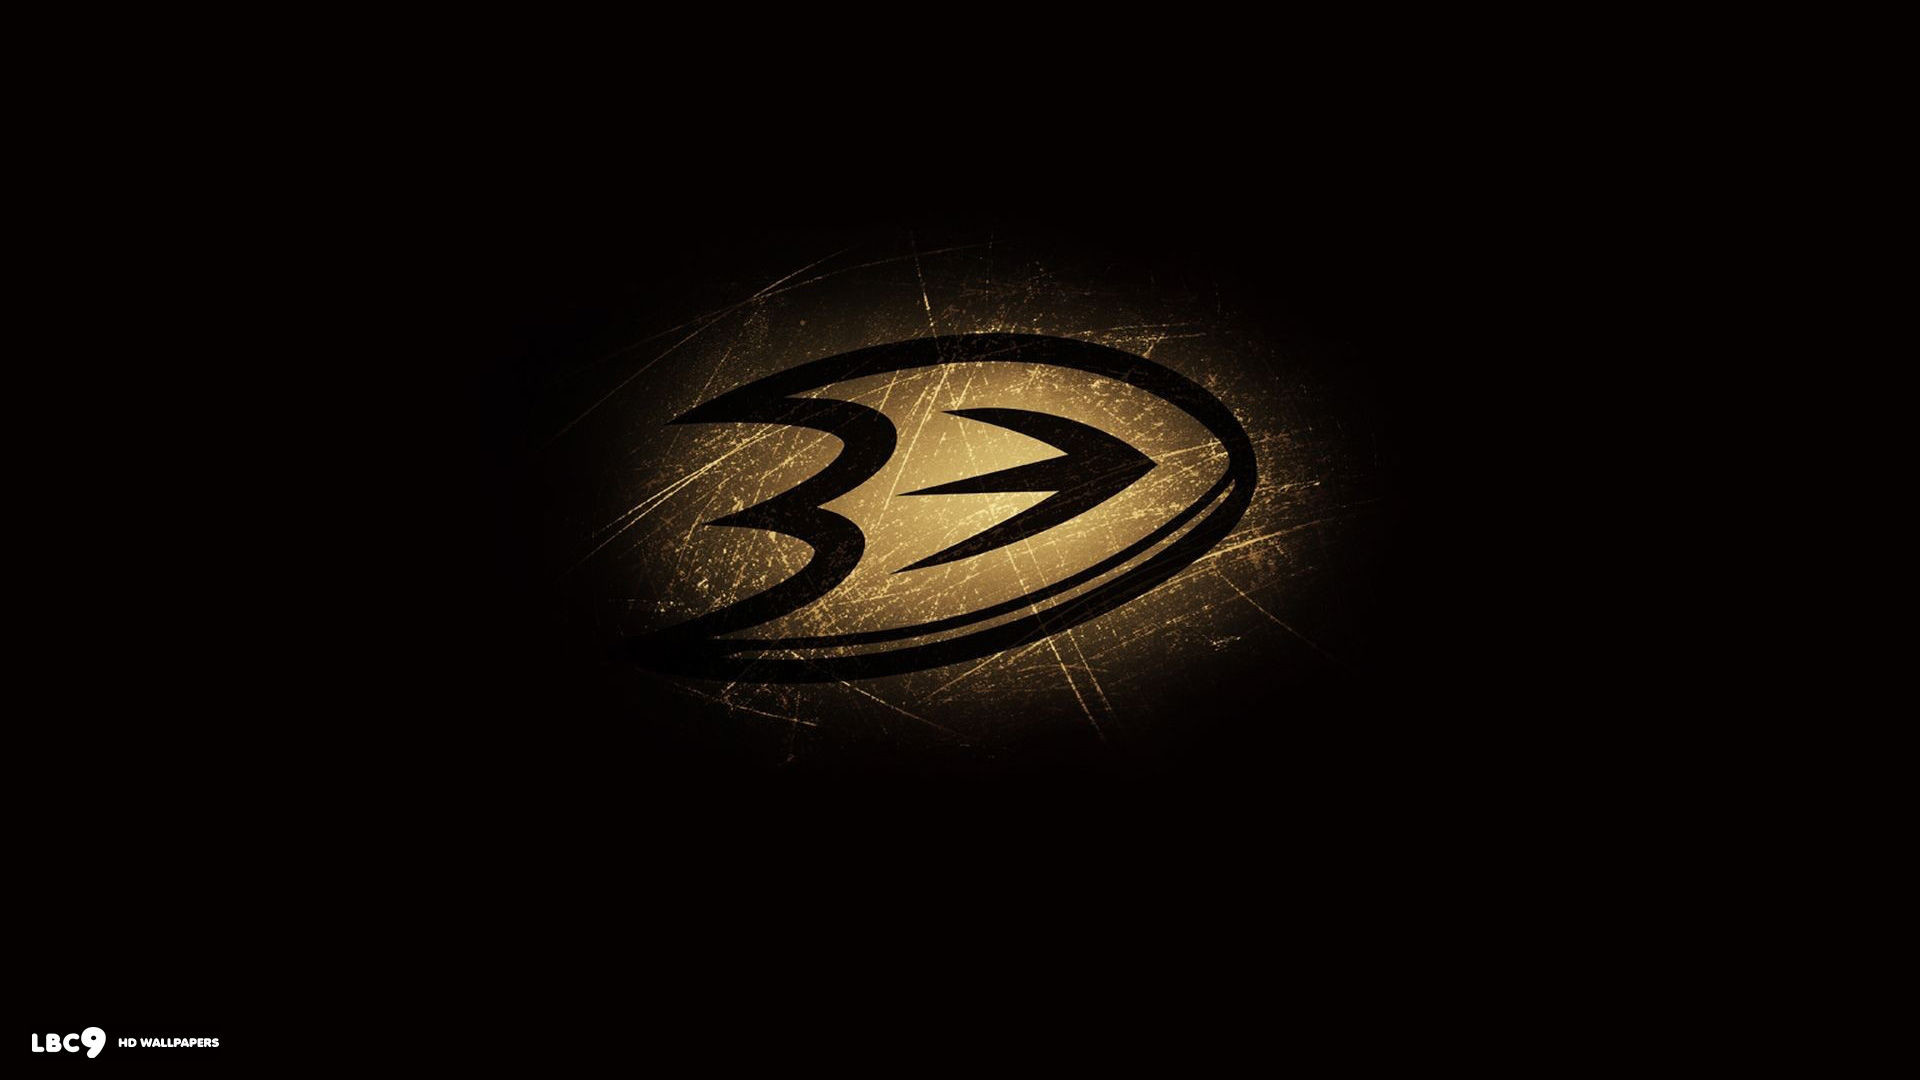 Free Awesome Anaheim Ducks Images on your Mobile